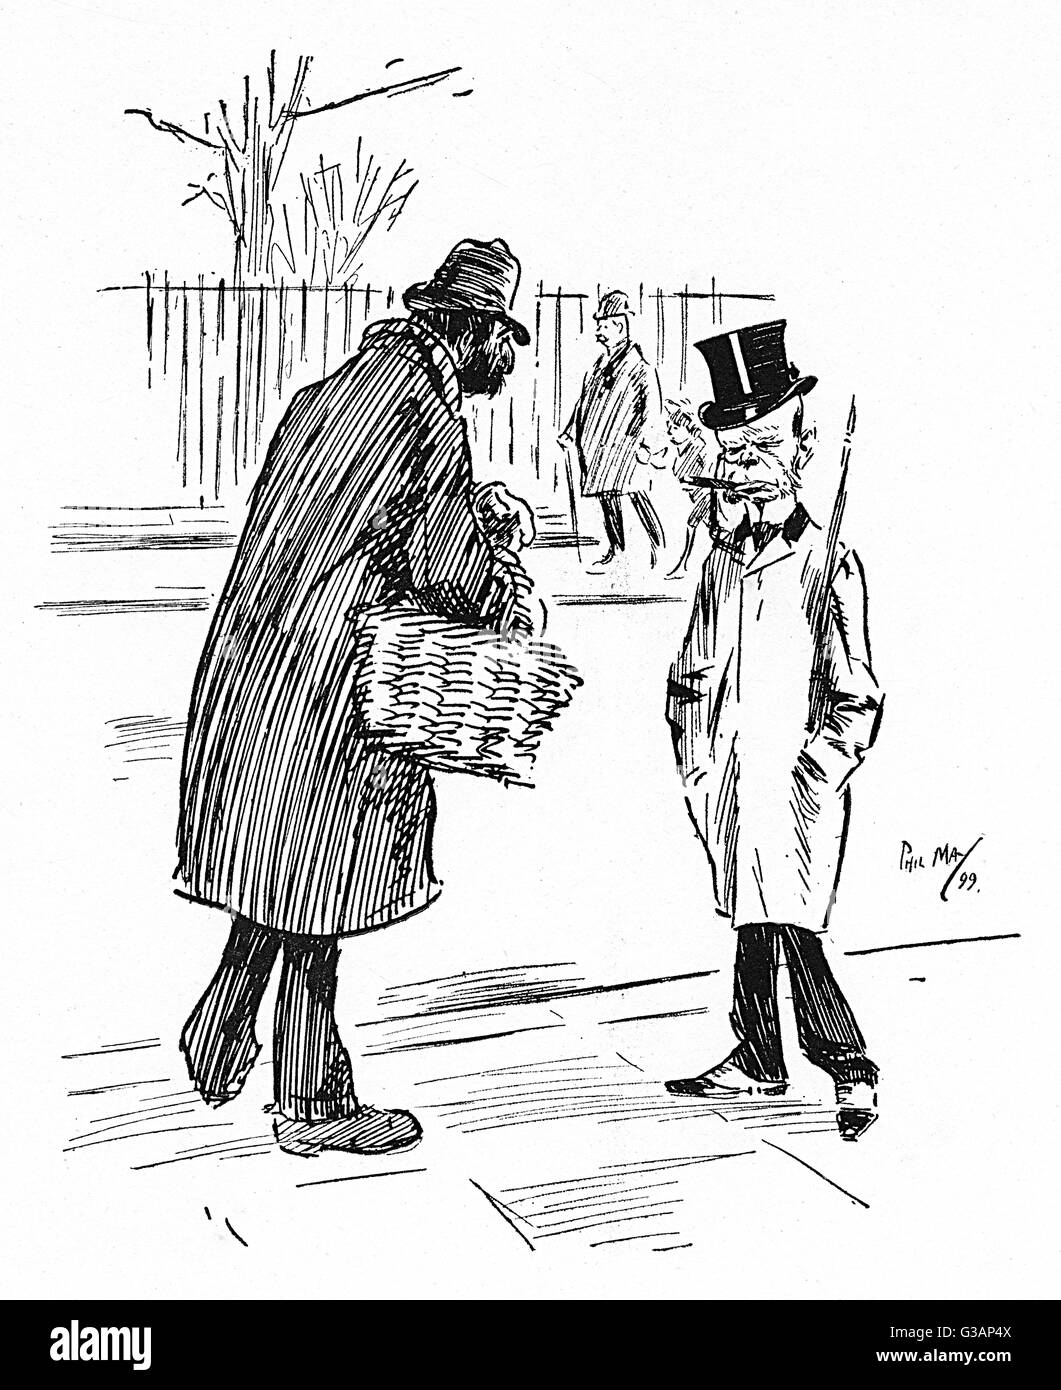 Street Vendor cheekily offering the sale of some nuts to a diminutive Gentleman with a distinctive Simian visage!! - Stock Image